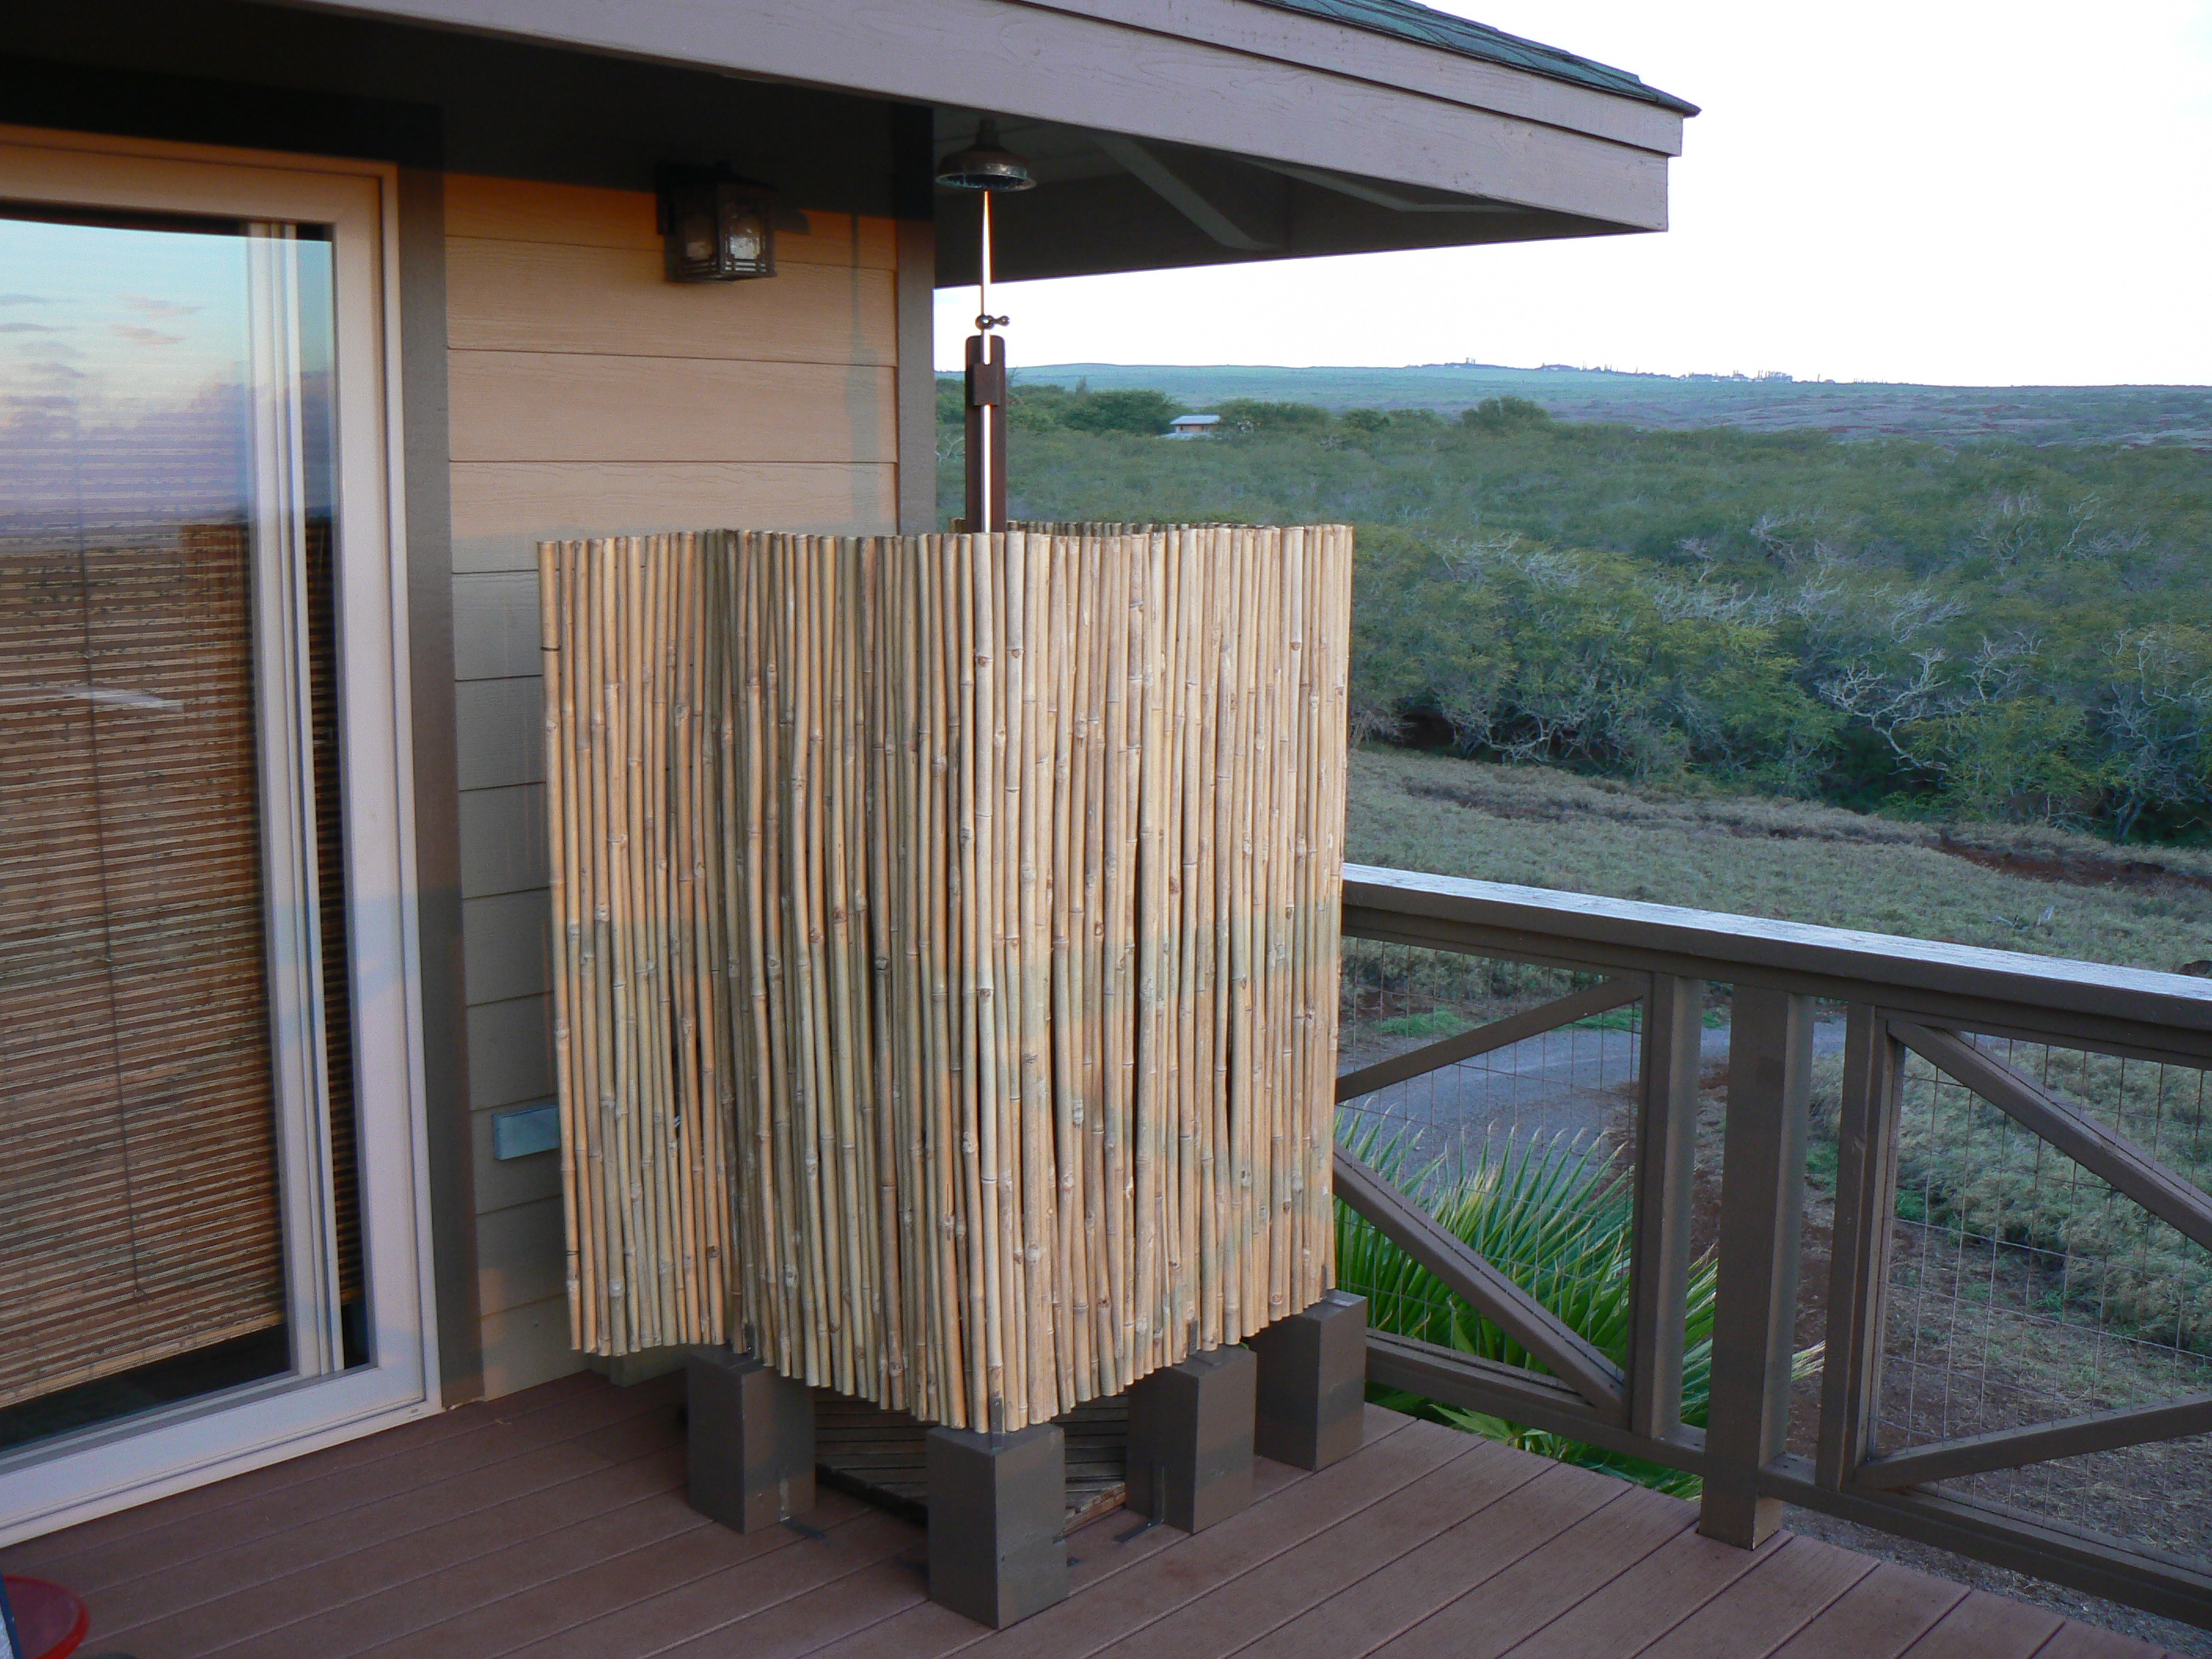 Outdoor Shower on the Lanai